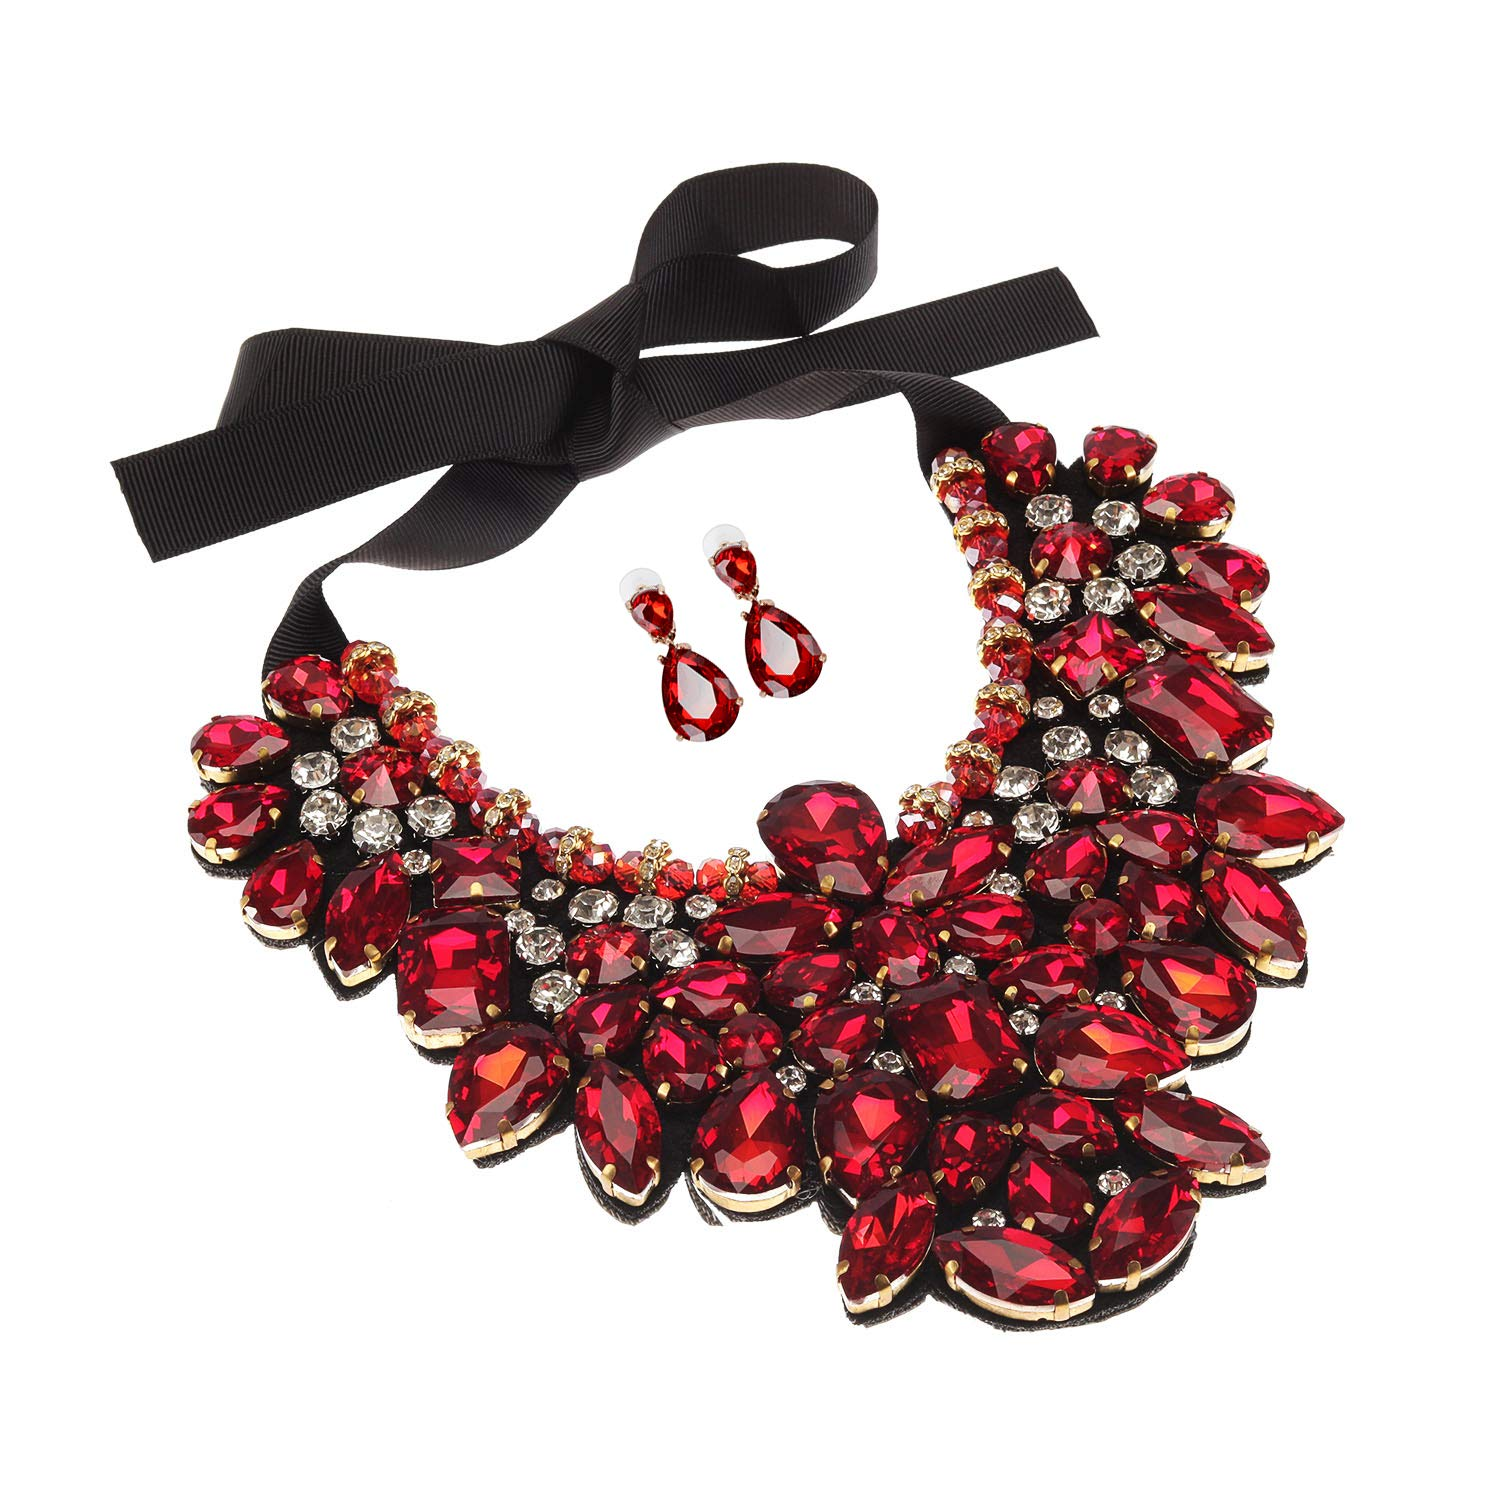 Holylove Red Costume Statement Necklace with Earrings for Women Jewelry Fashion Necklace 1 Set with Gift Box-HLN8455E-Red